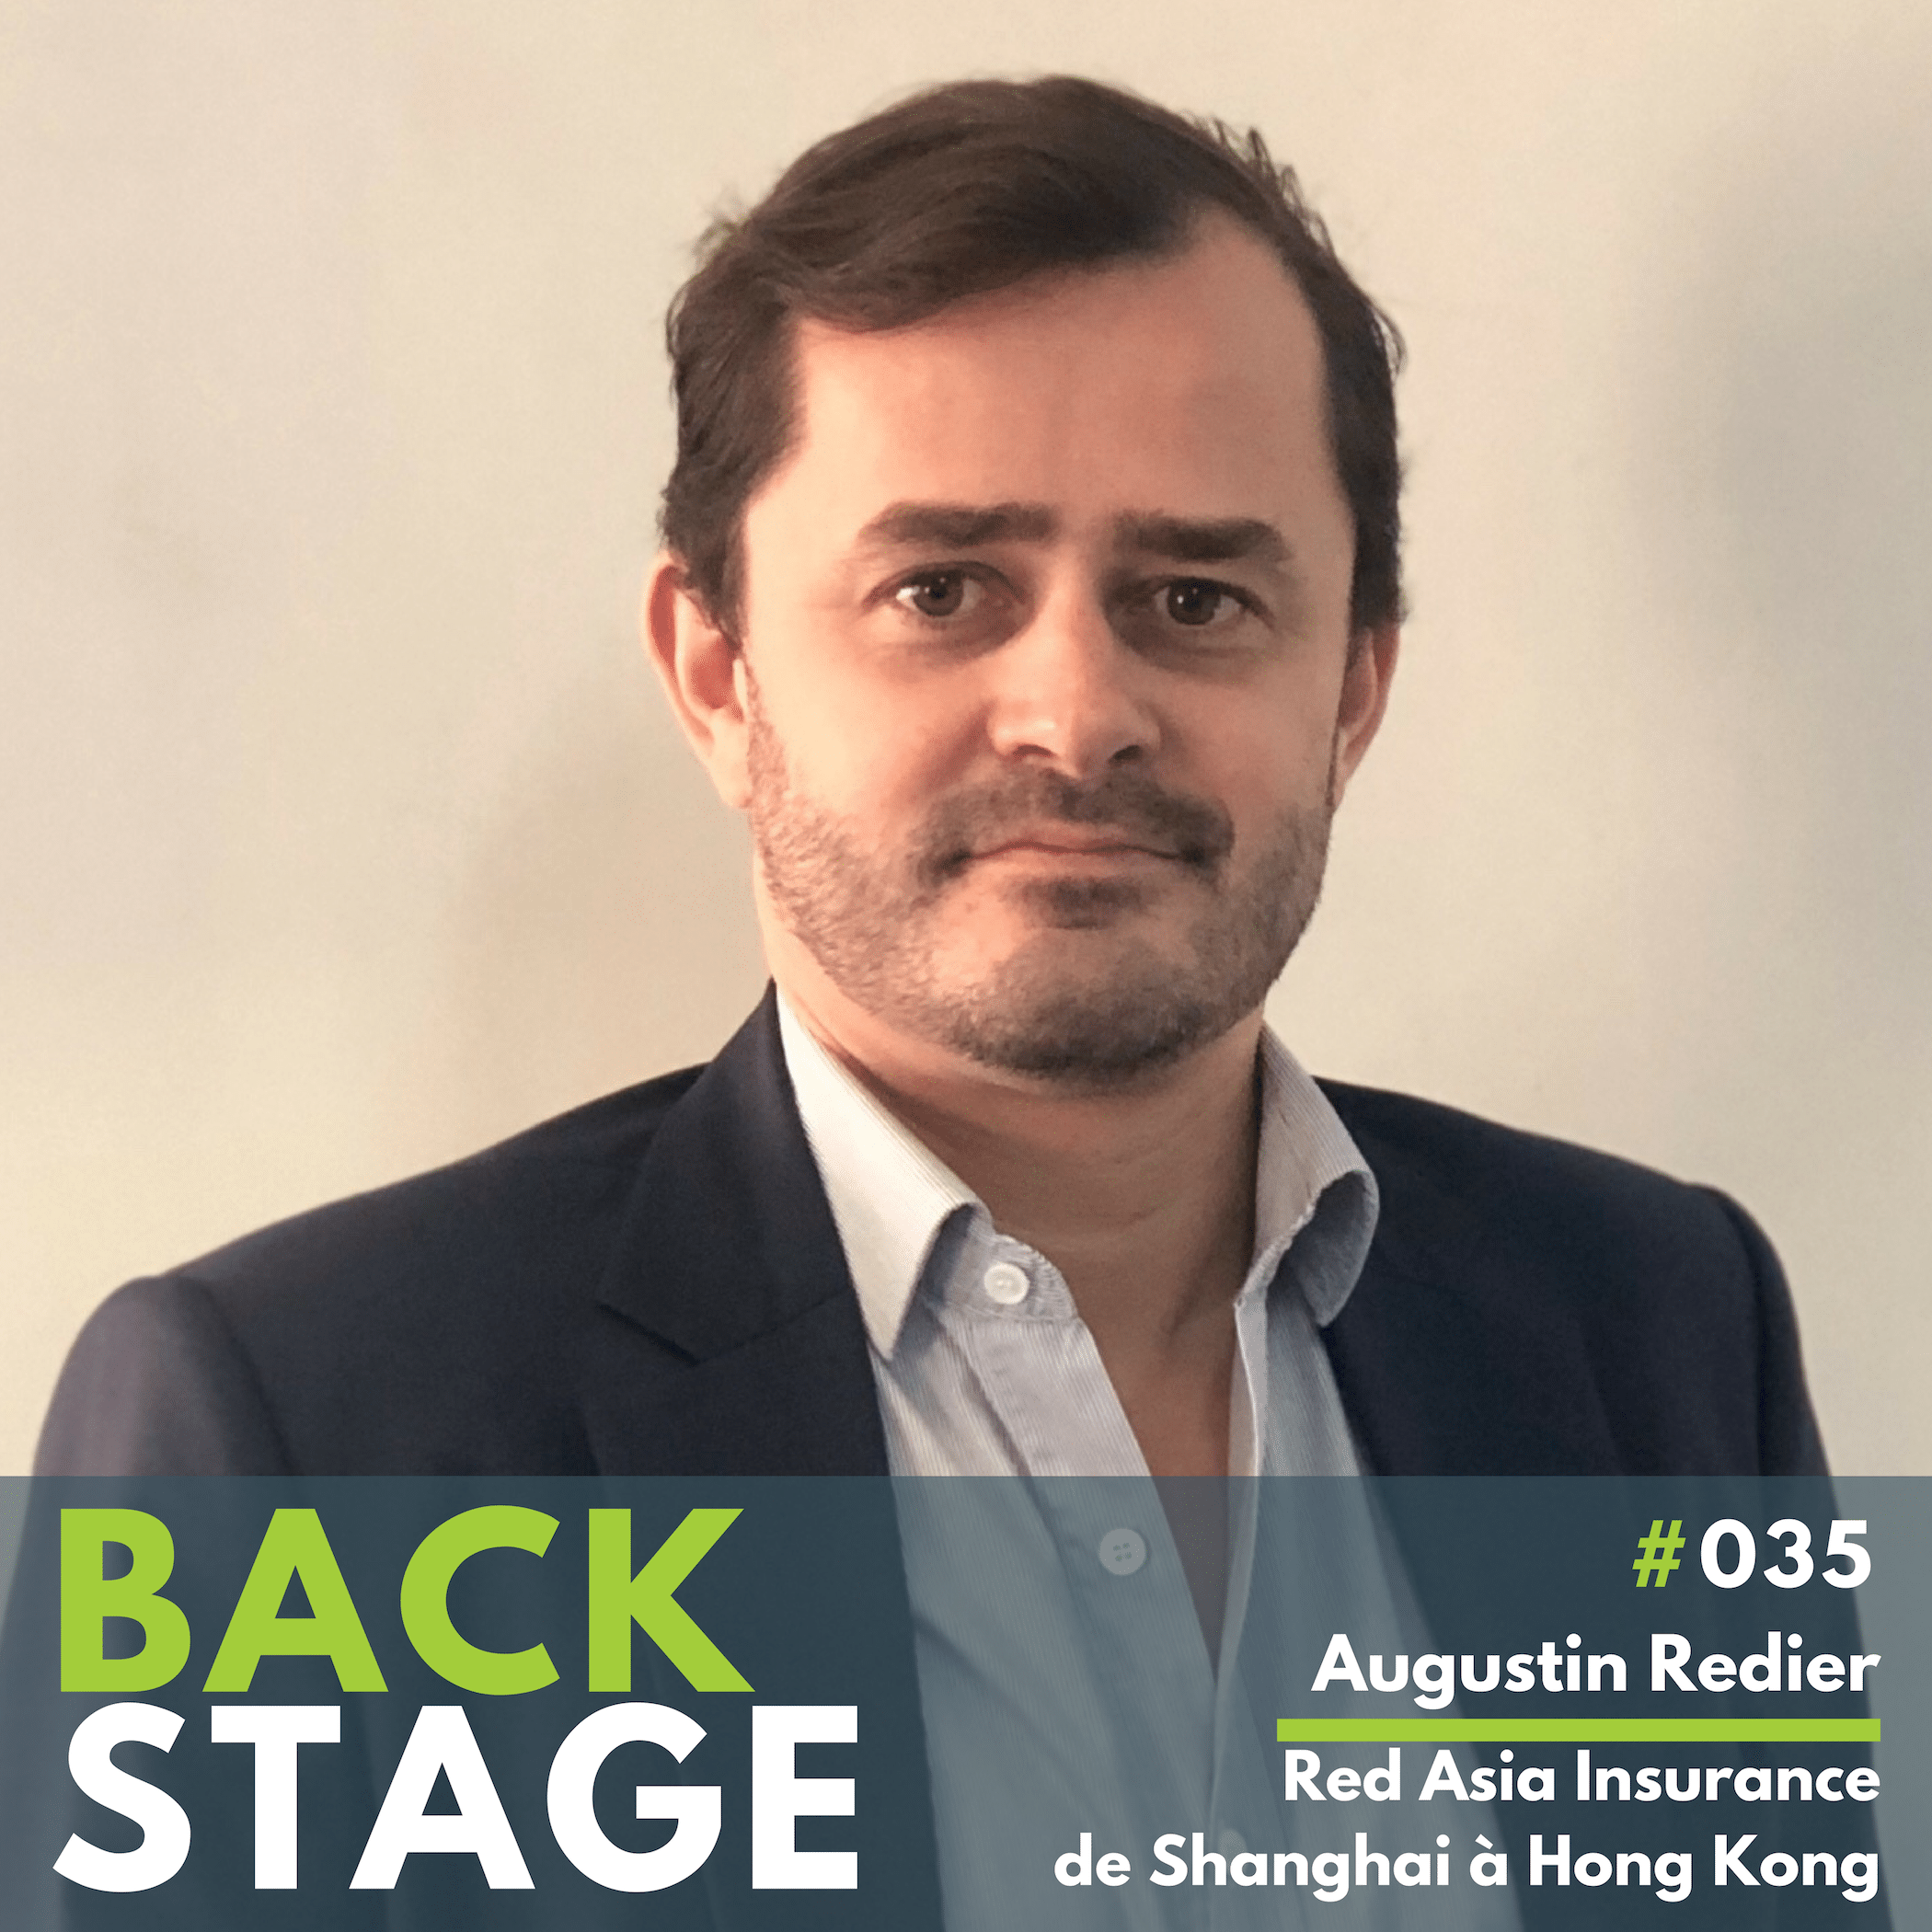 BACKSTAGE #035 - Augustin Redier, Red Asia Insurance - BackStage Podcast